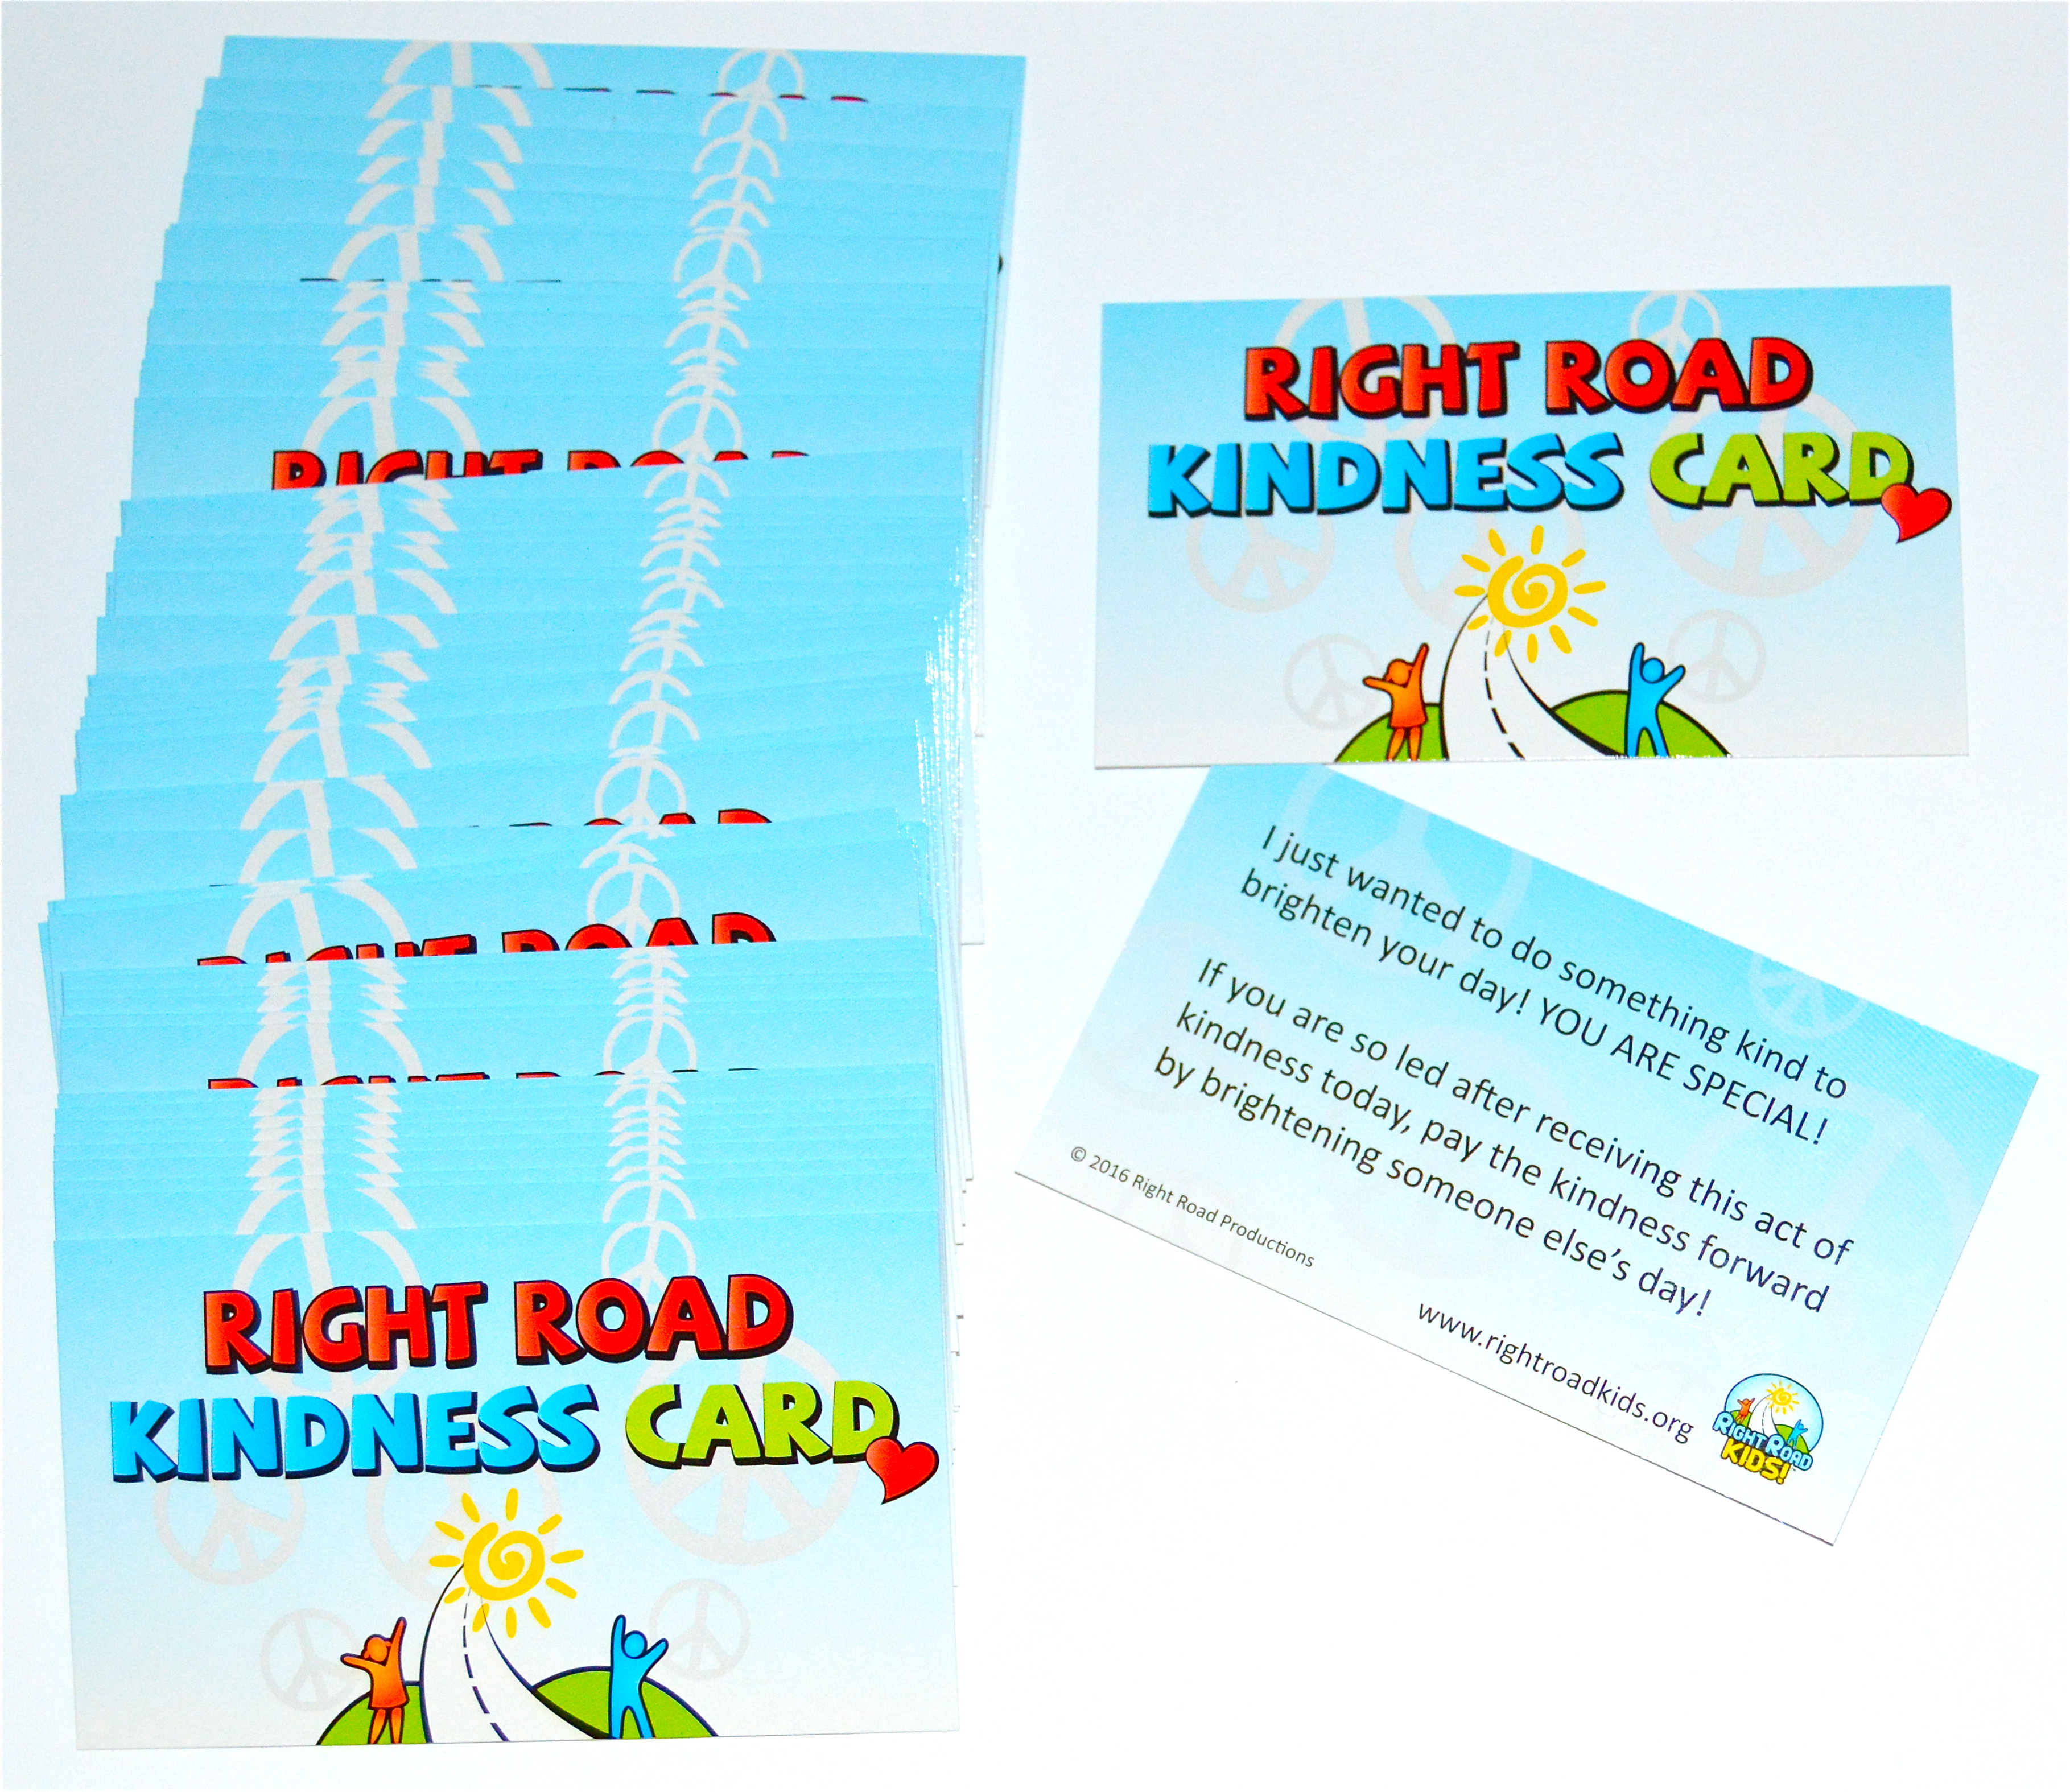 RR Kindness Card Picture for Website